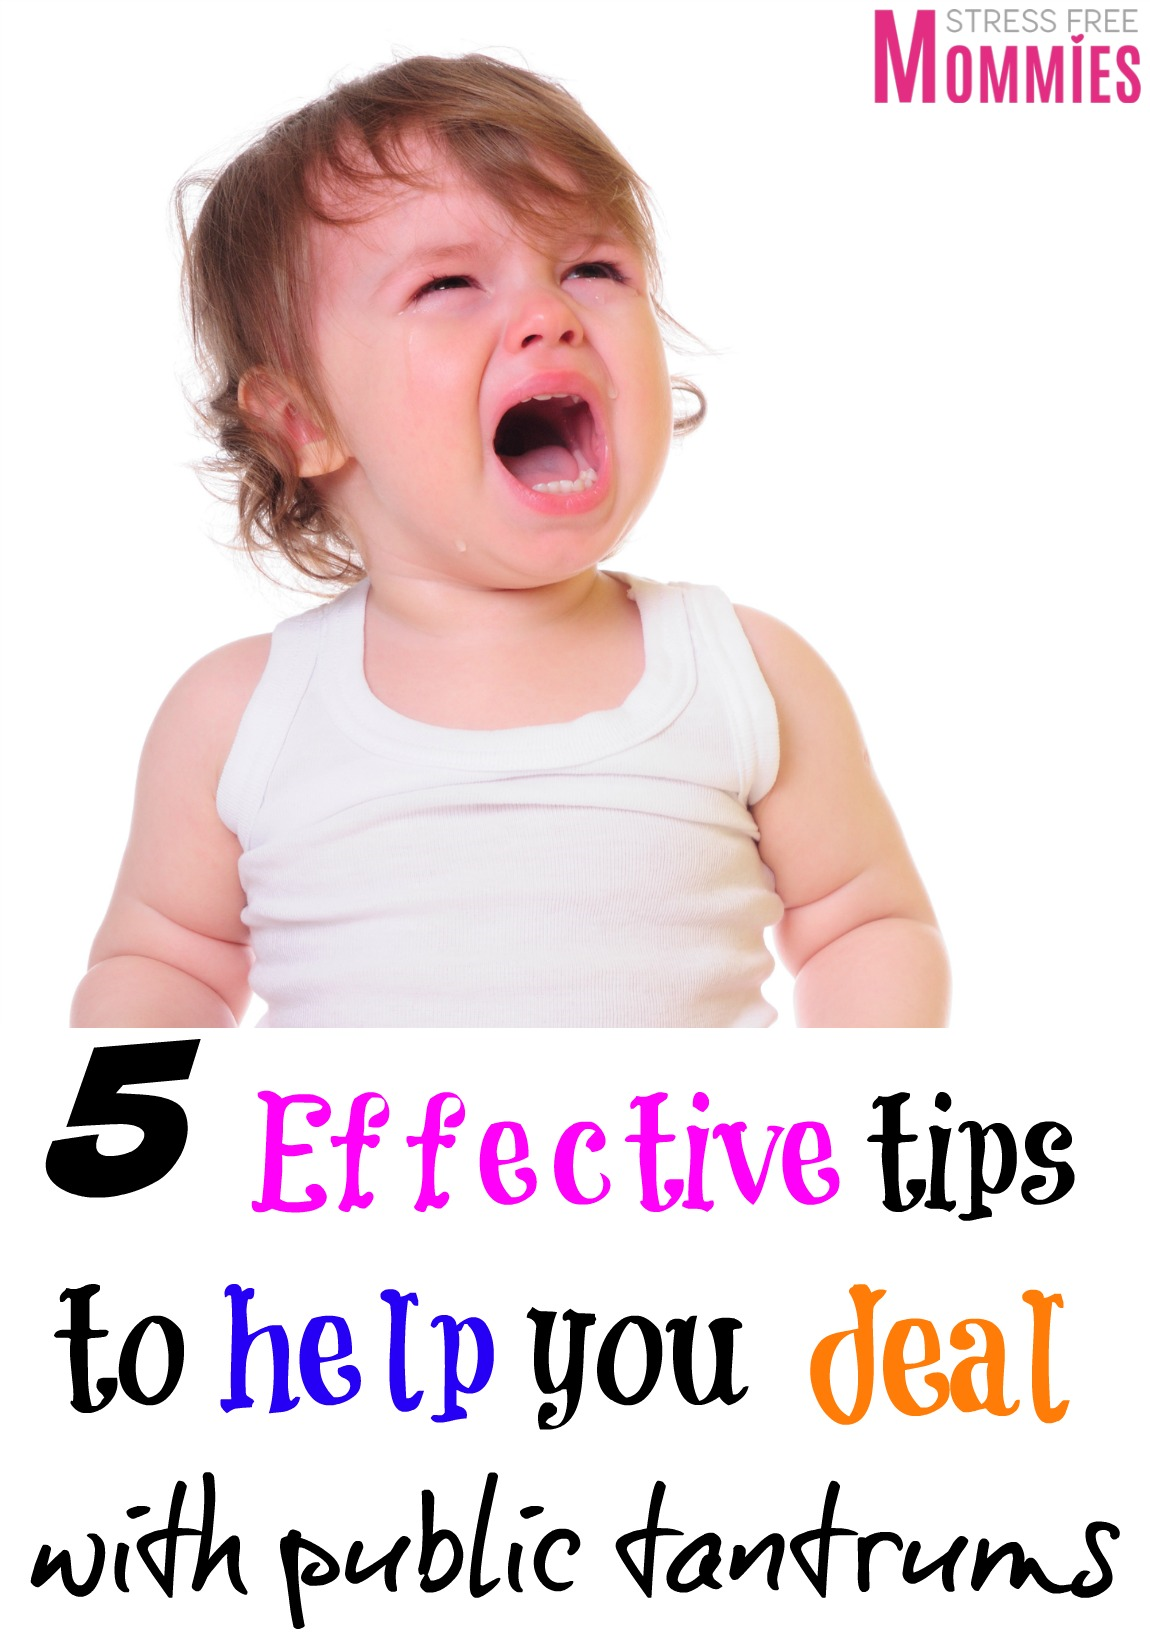 5 effective tips to help you deal with public tantrums- Simple tips to implement when your kids are not listening to you and are throwing a public tantrum.  #toddler #parentingtips #tantrums